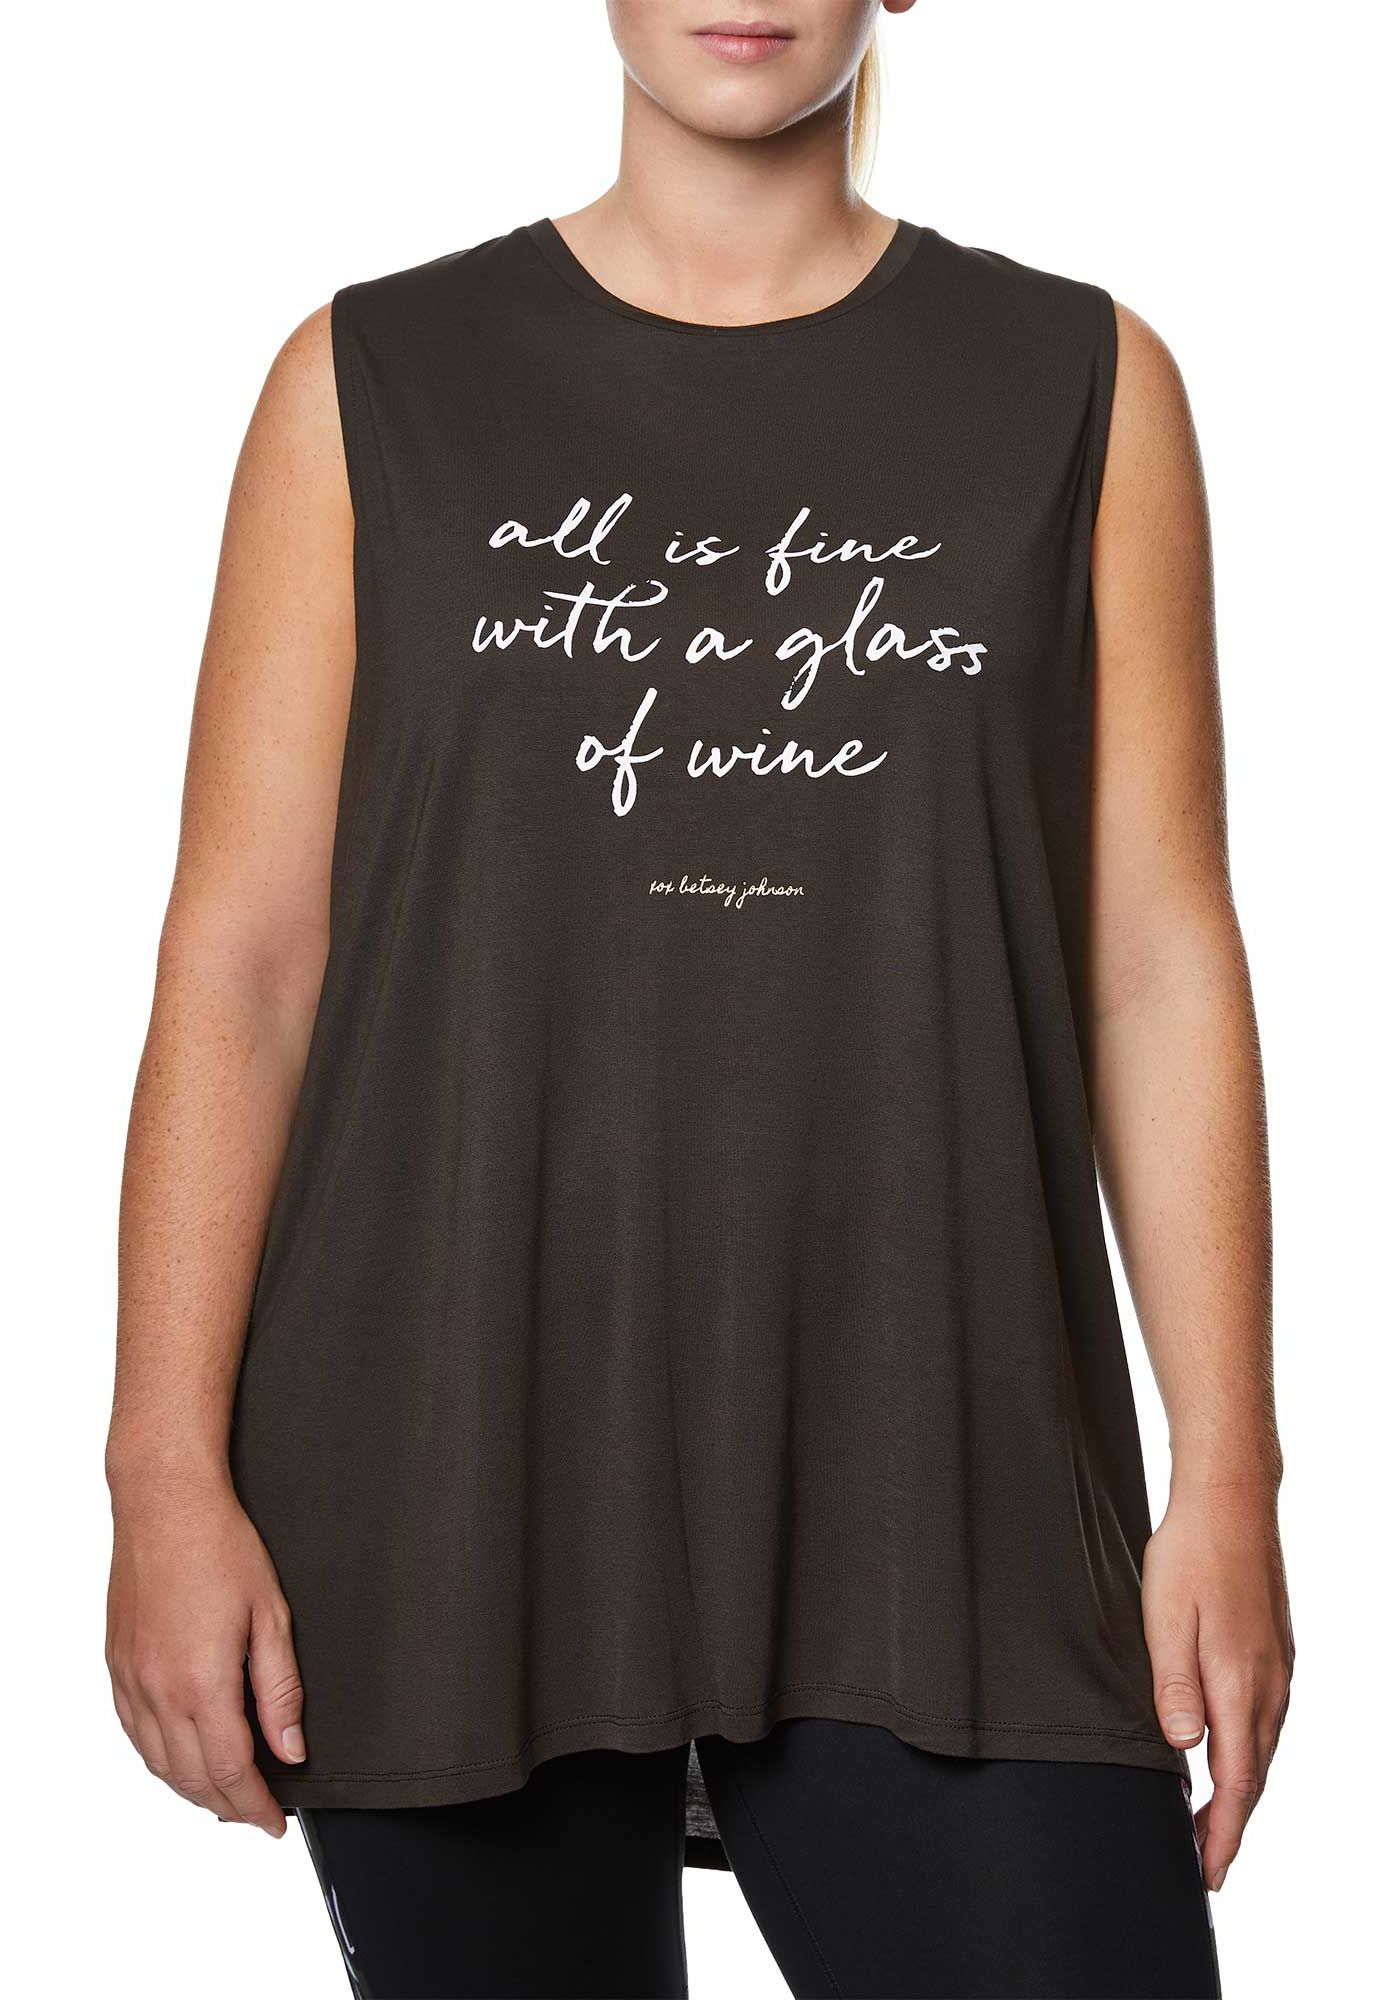 Betsey Johnson Performance Women's Plus Size All Is Fine Graphic Muscle Tank Top